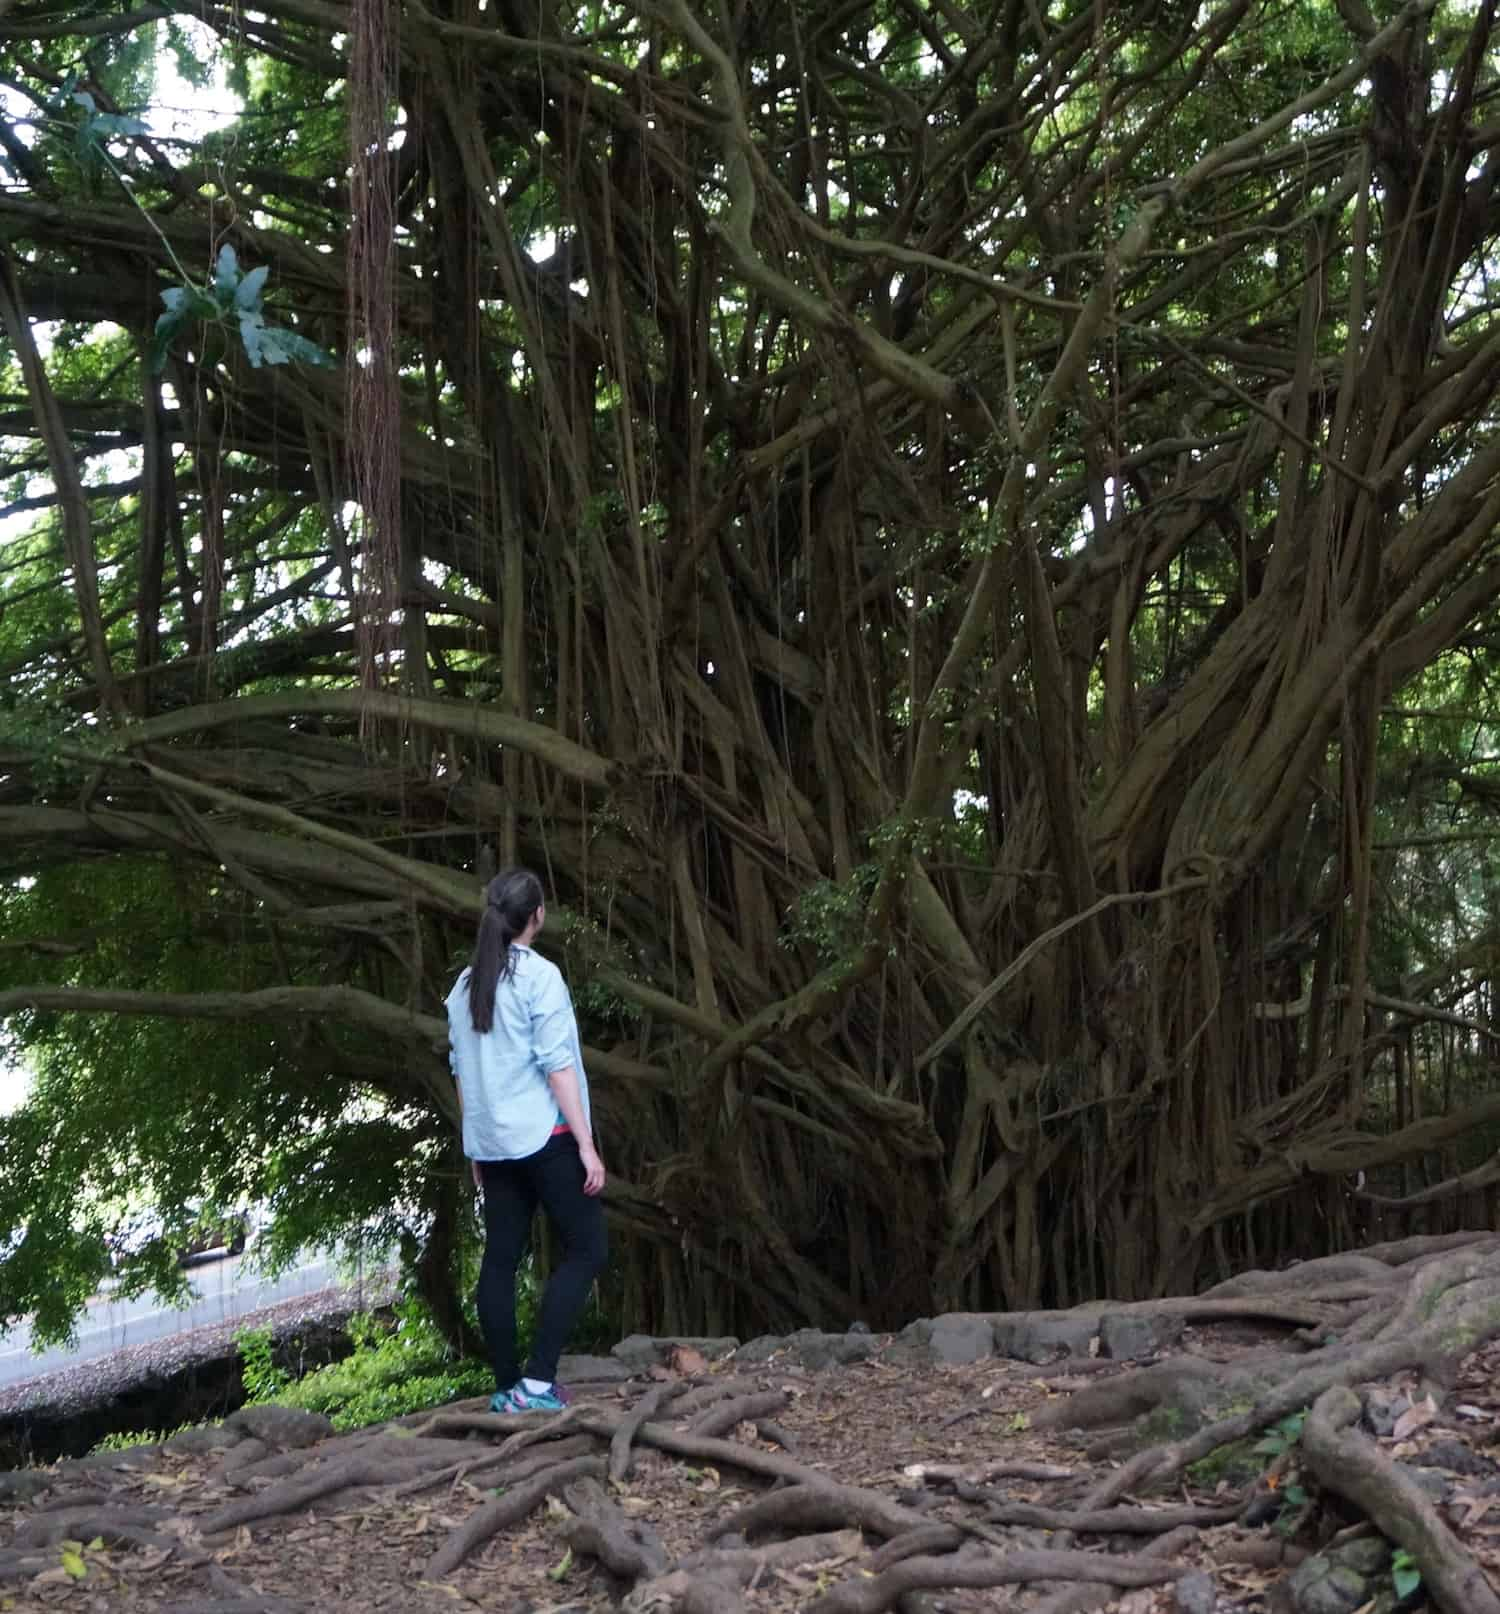 3 Days on Hawaii - Banyan Tree